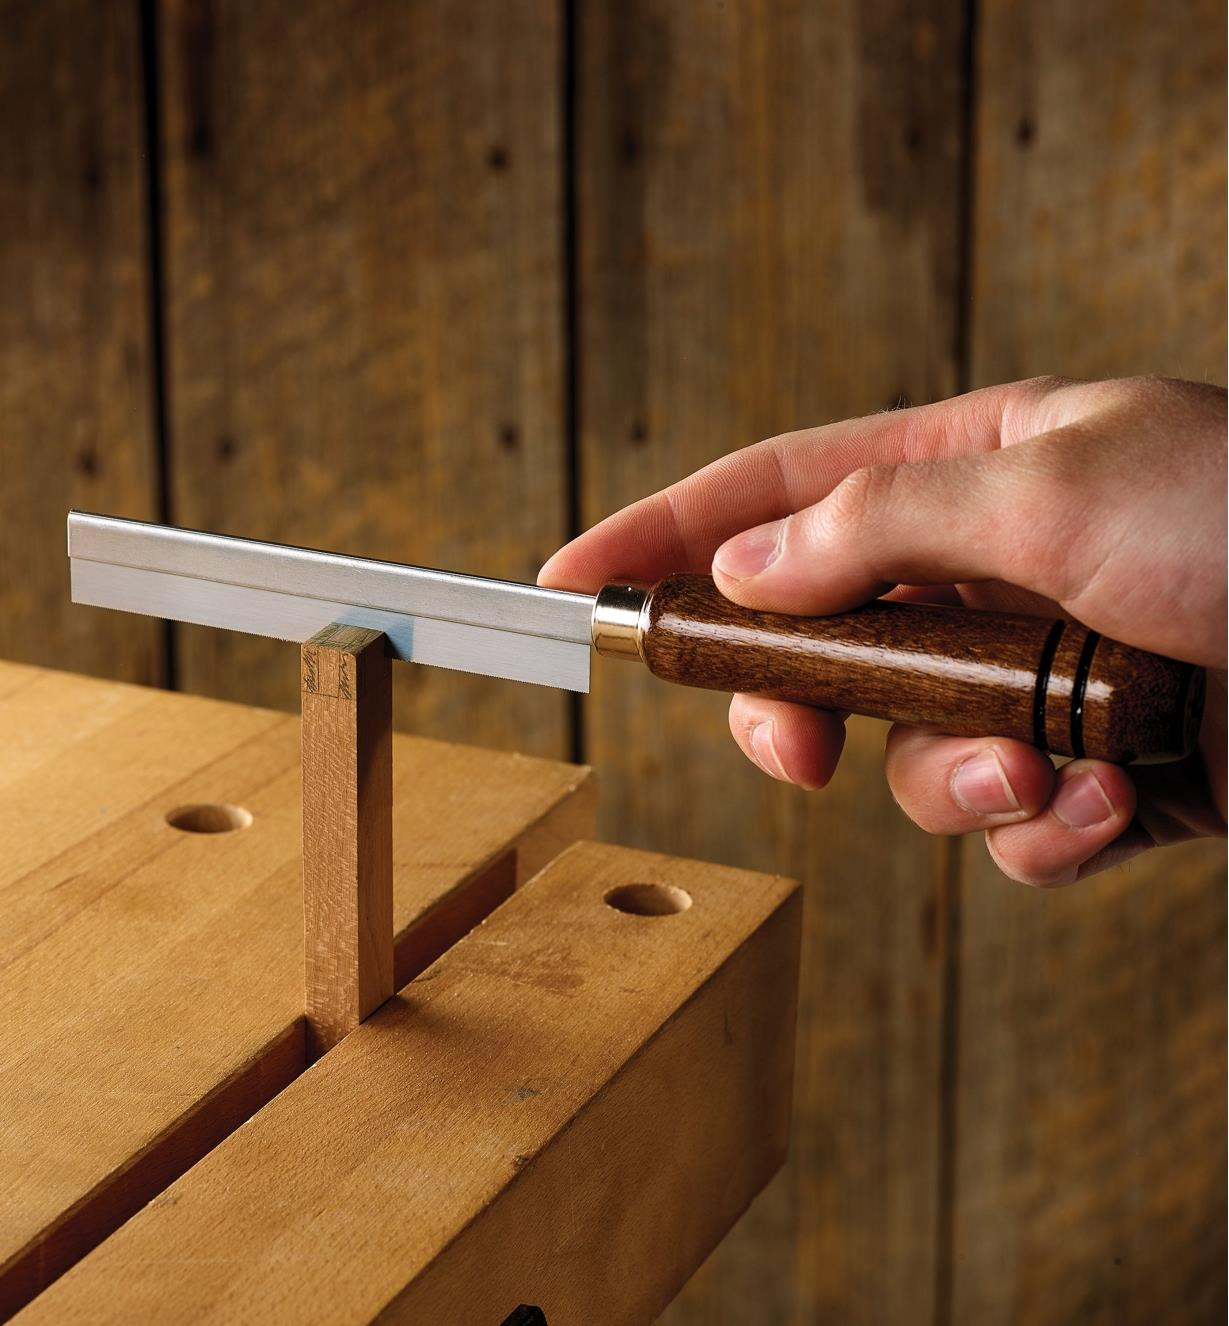 Cutting details into a wooden workpiece with an ultra-thin razor saw